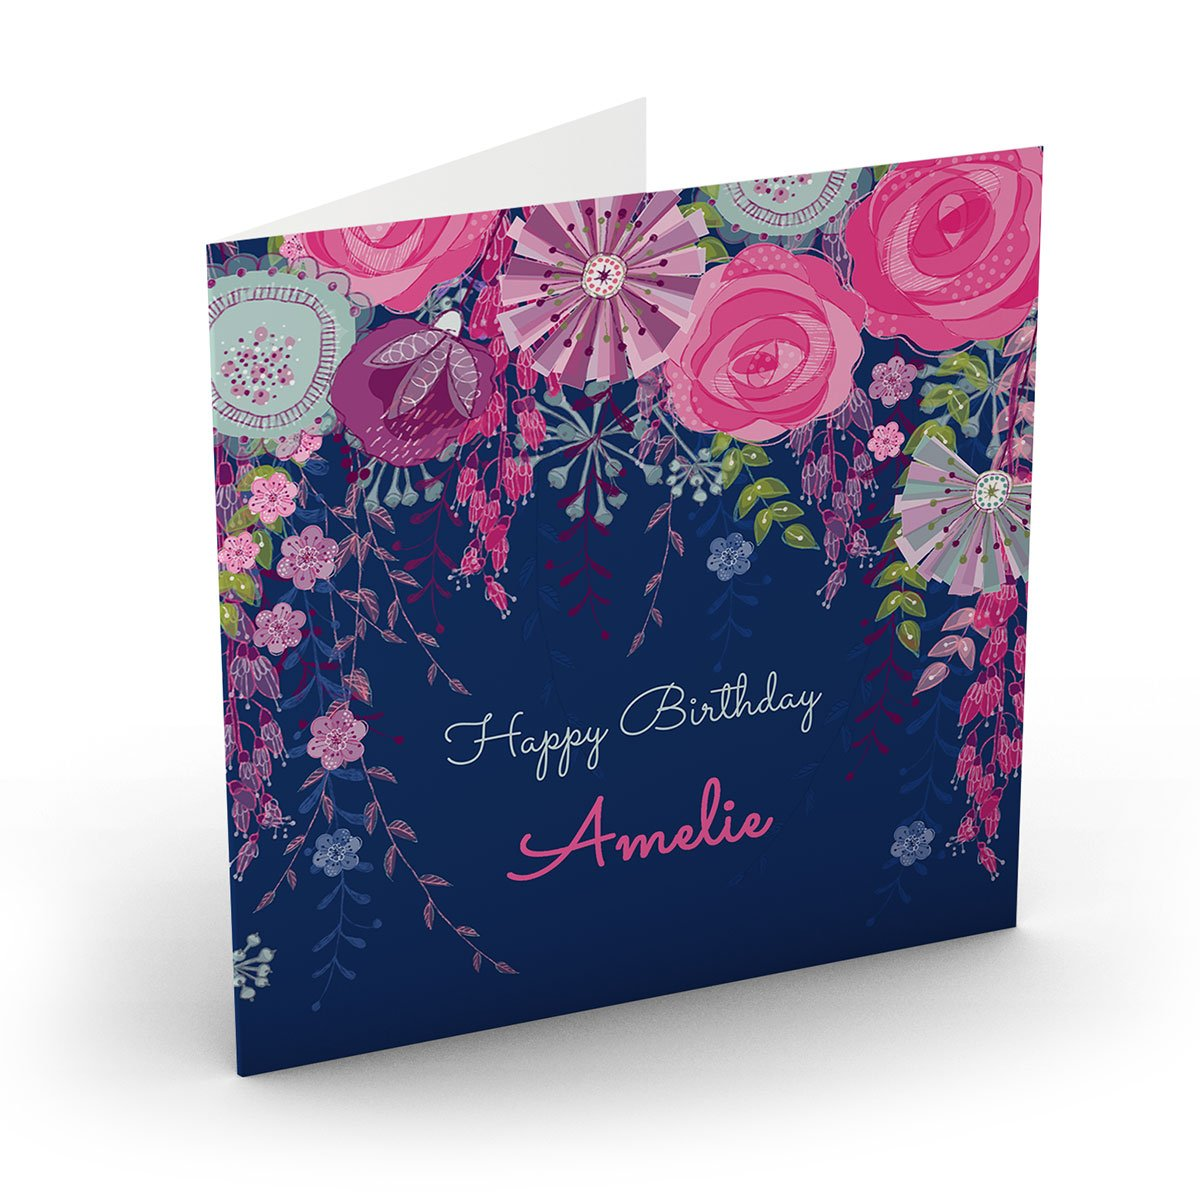 Personalised Nik Golesworthy Birthday Card - Pink & Navy Floral